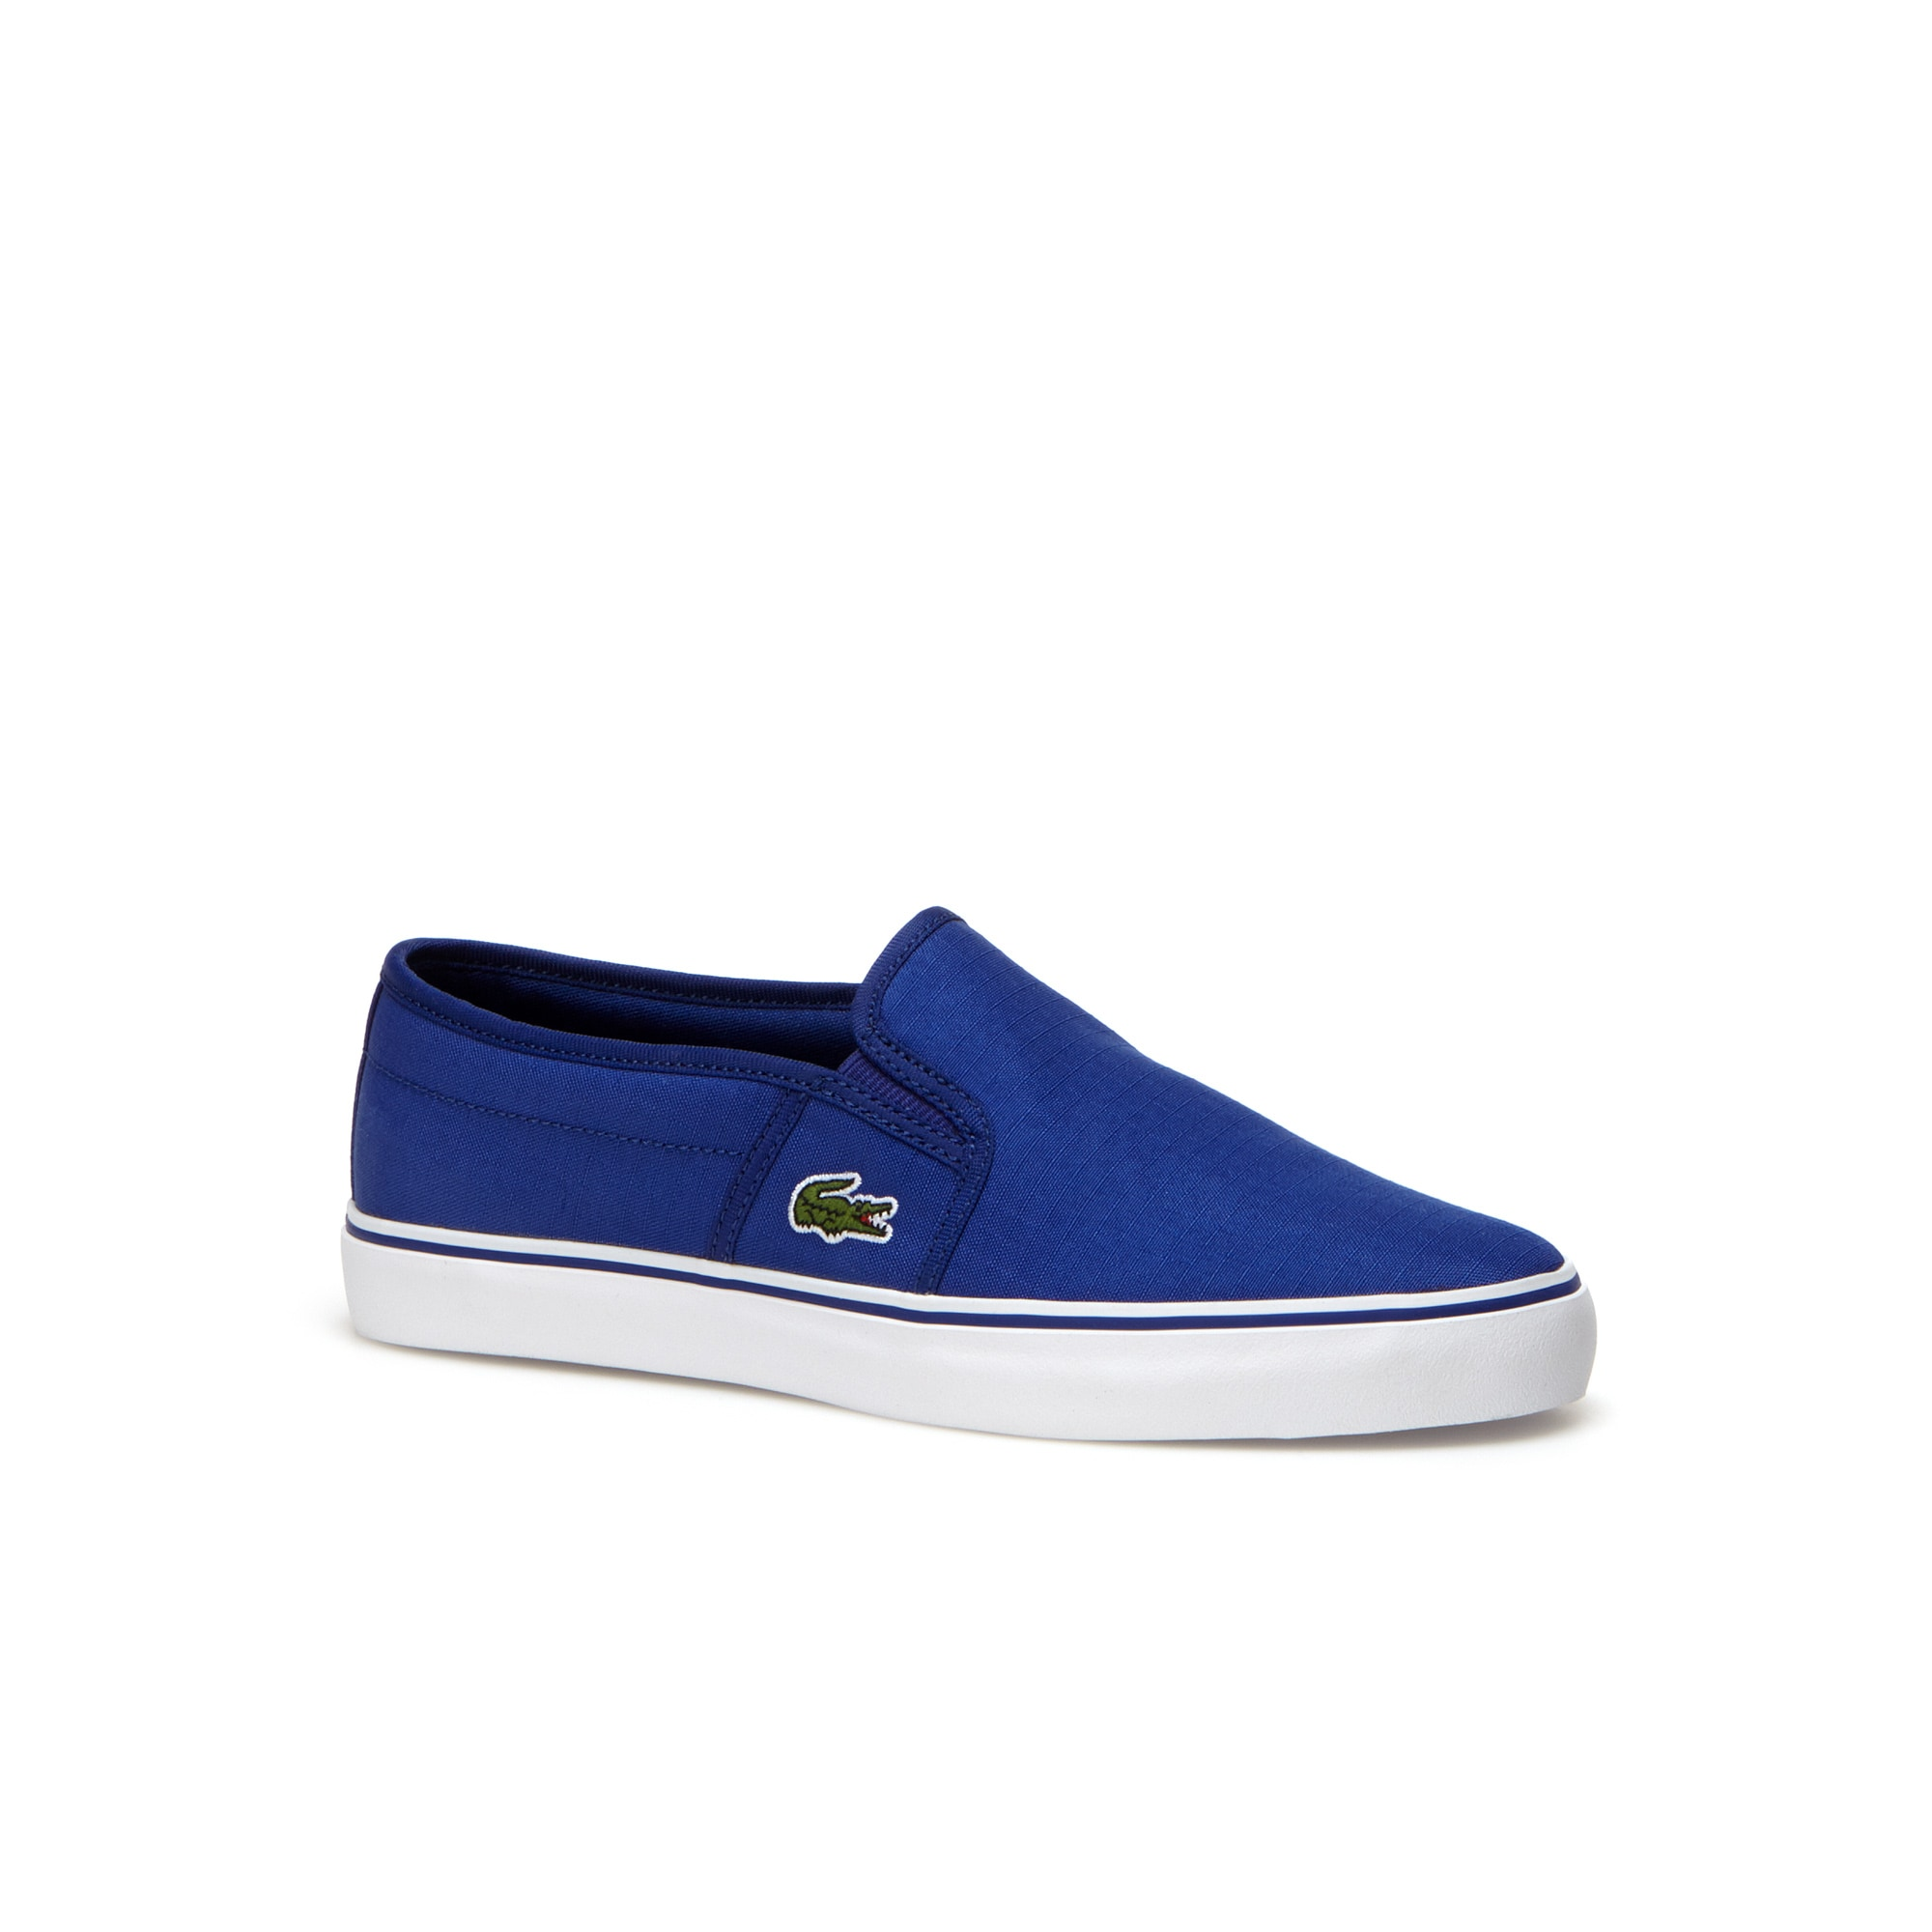 Women's Gazon Ripstop Canvas Slip-ons